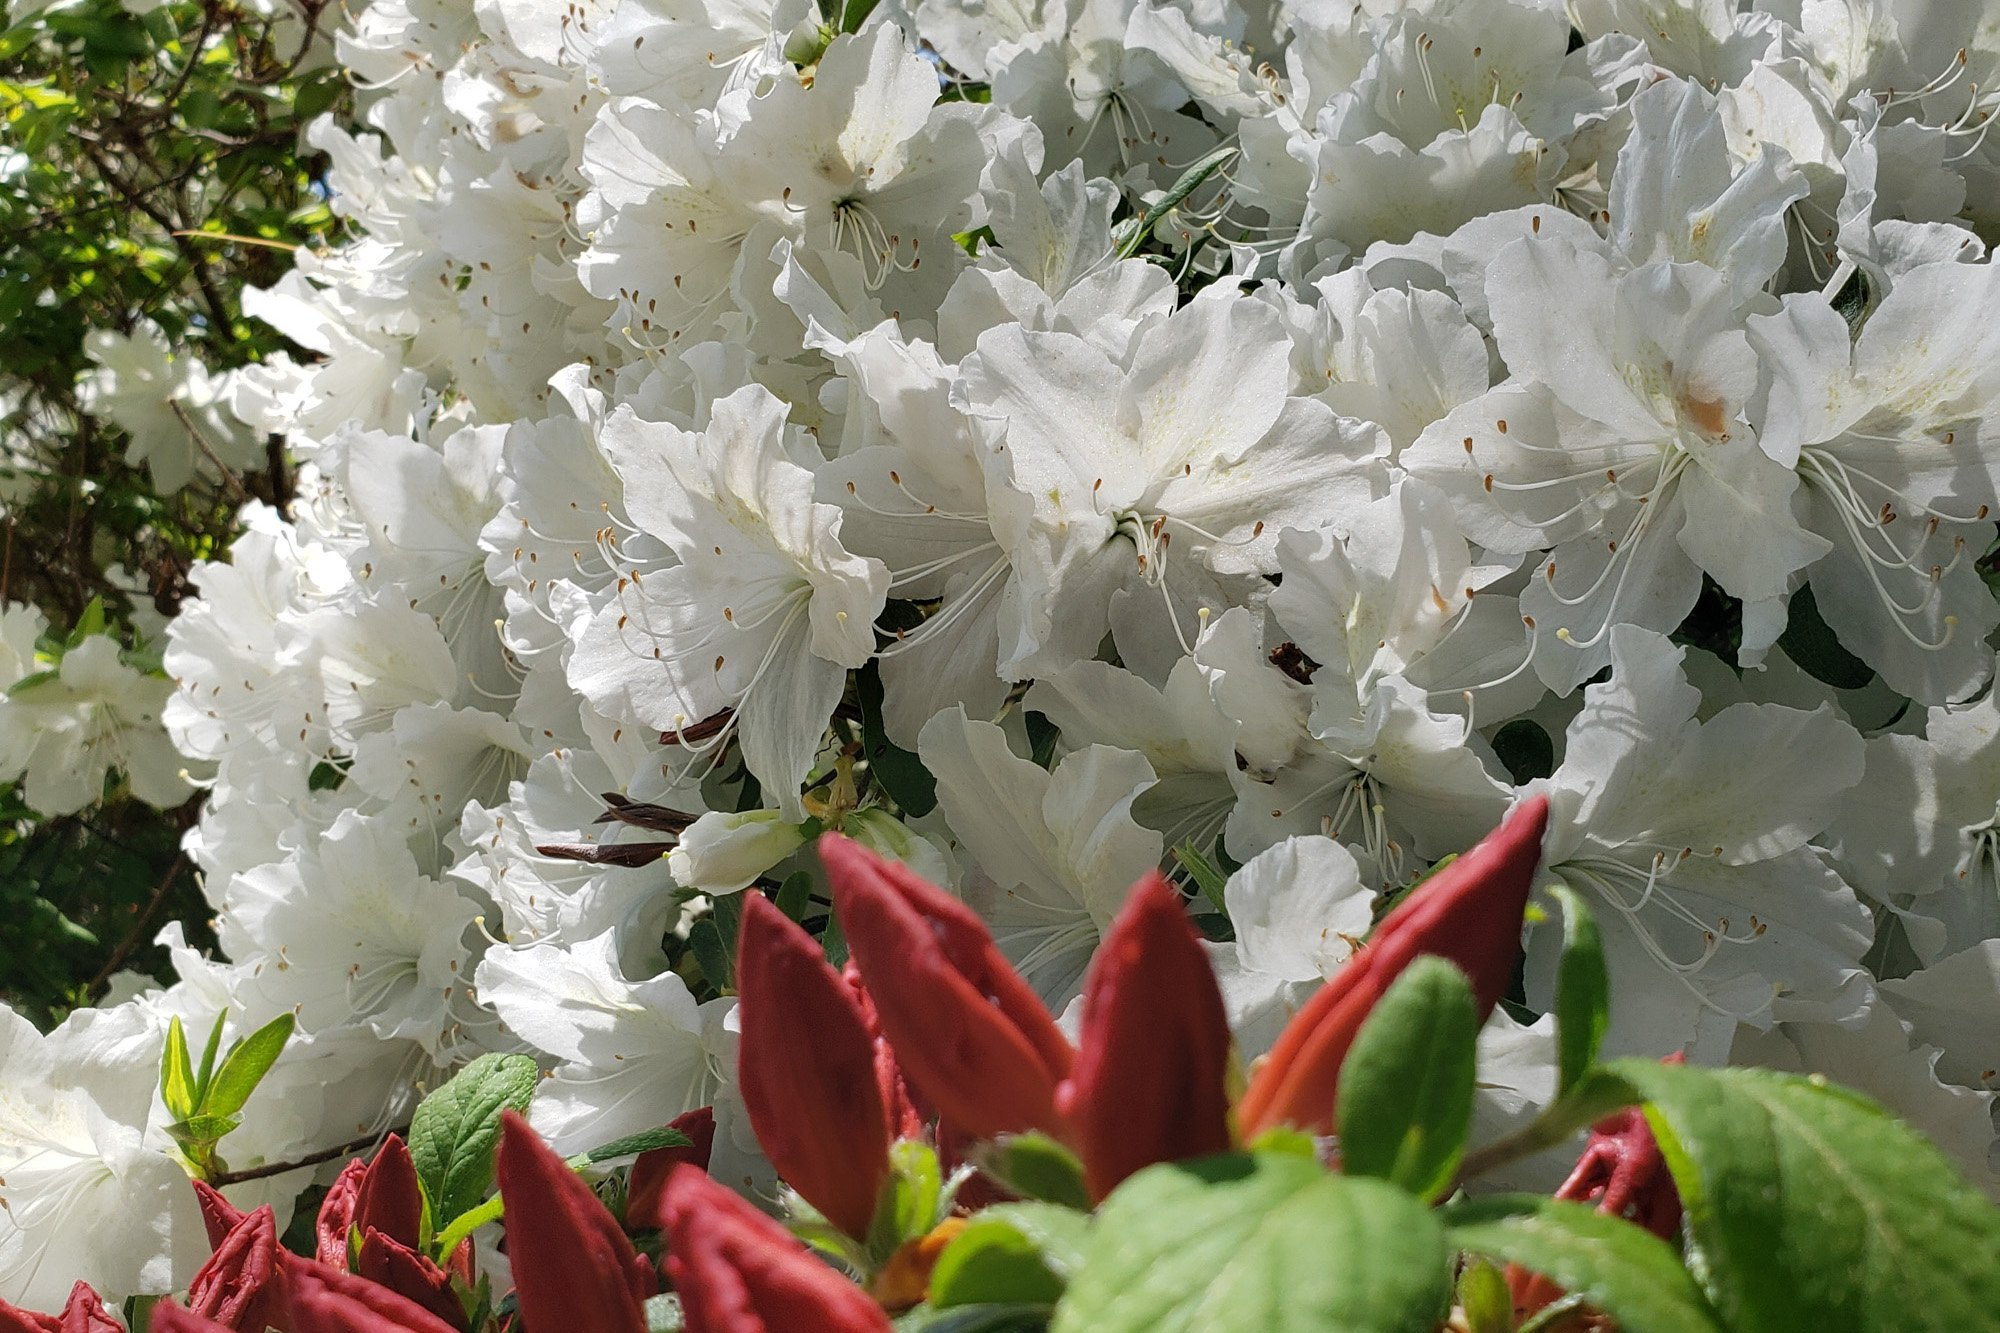 Rhododendron White and red